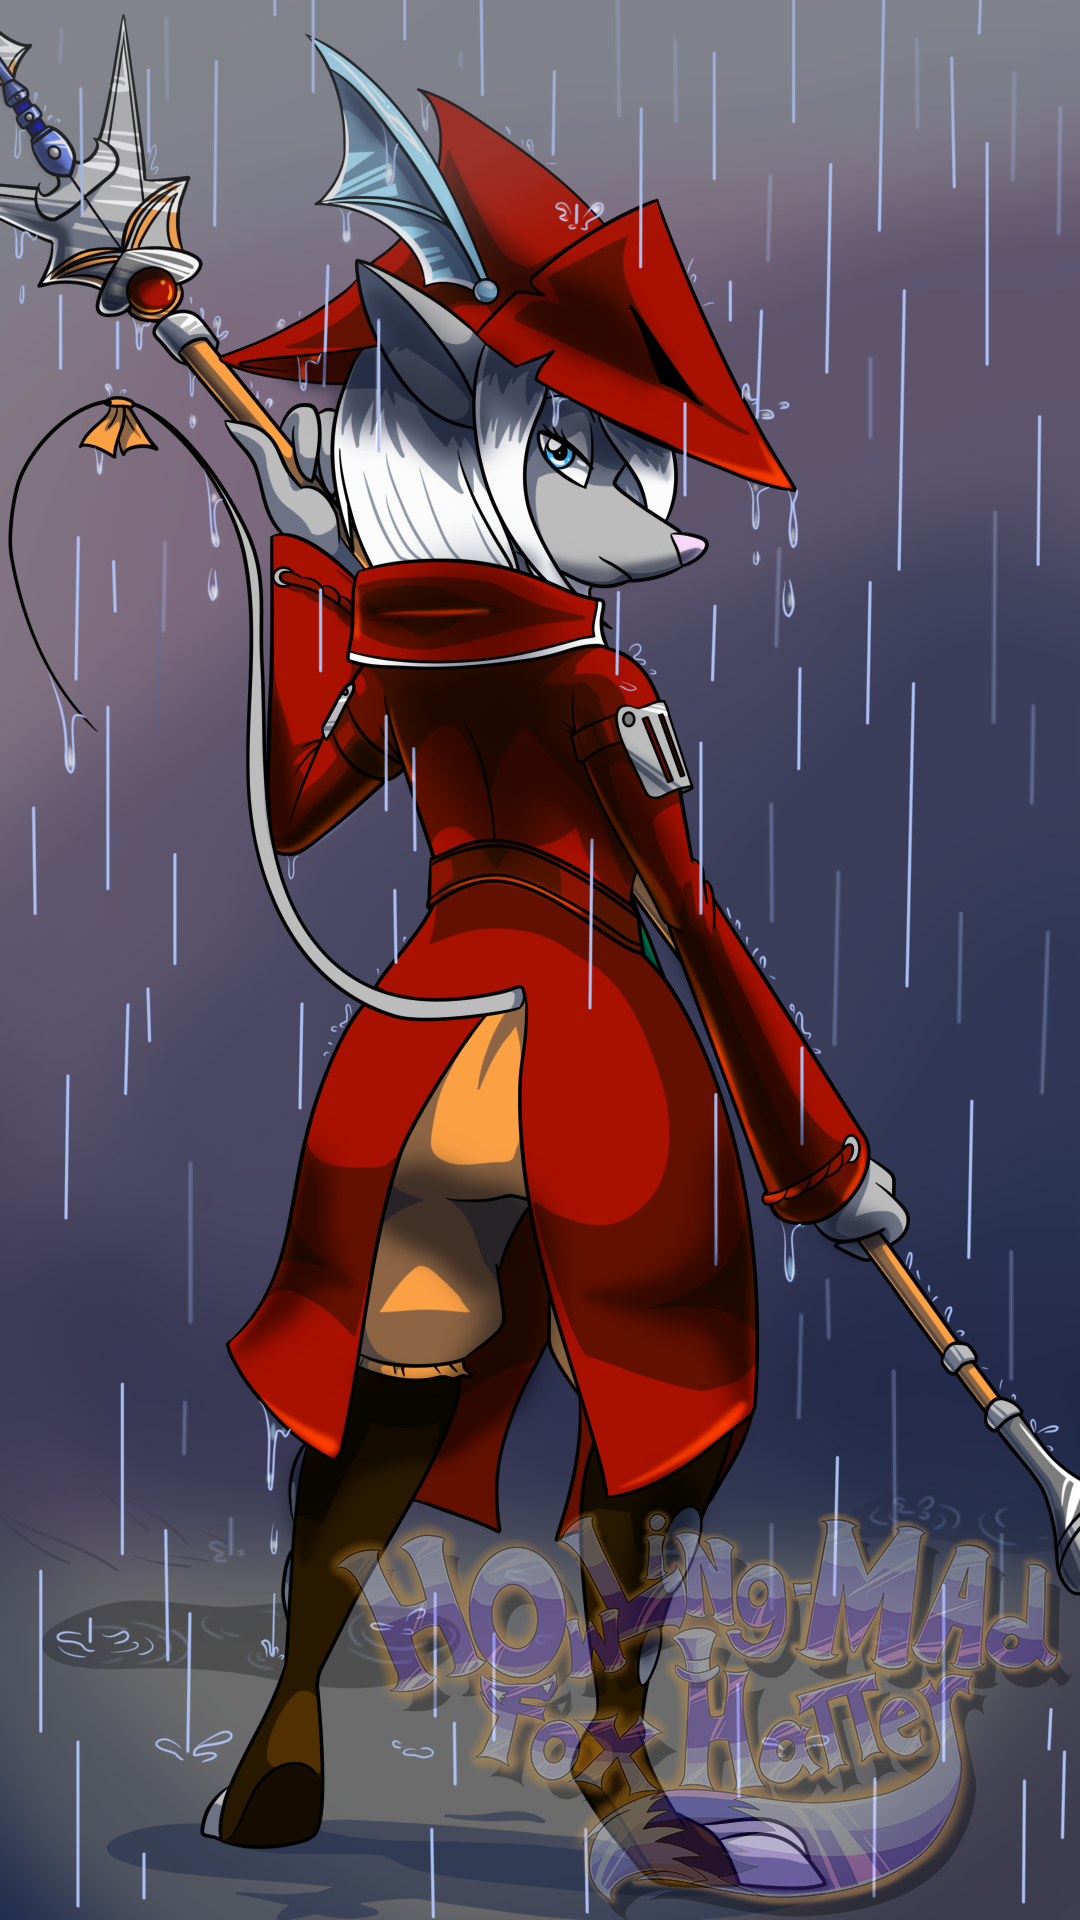 Rodent in the Rain